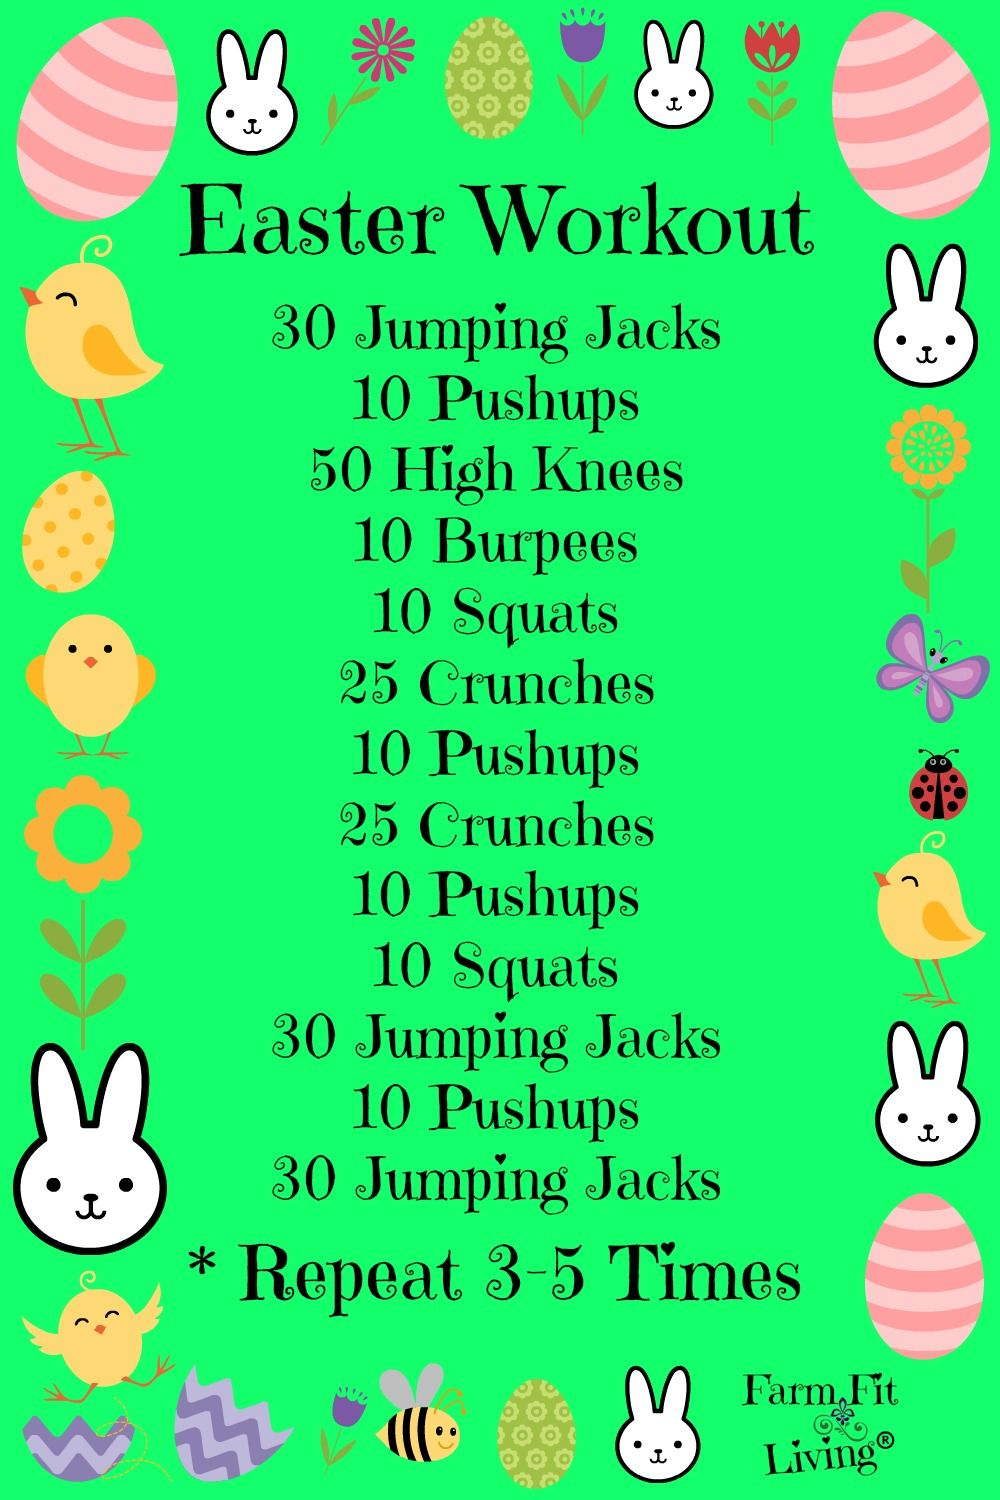 Mindy Young Motivation Easy Workouts Holiday Workout Fun